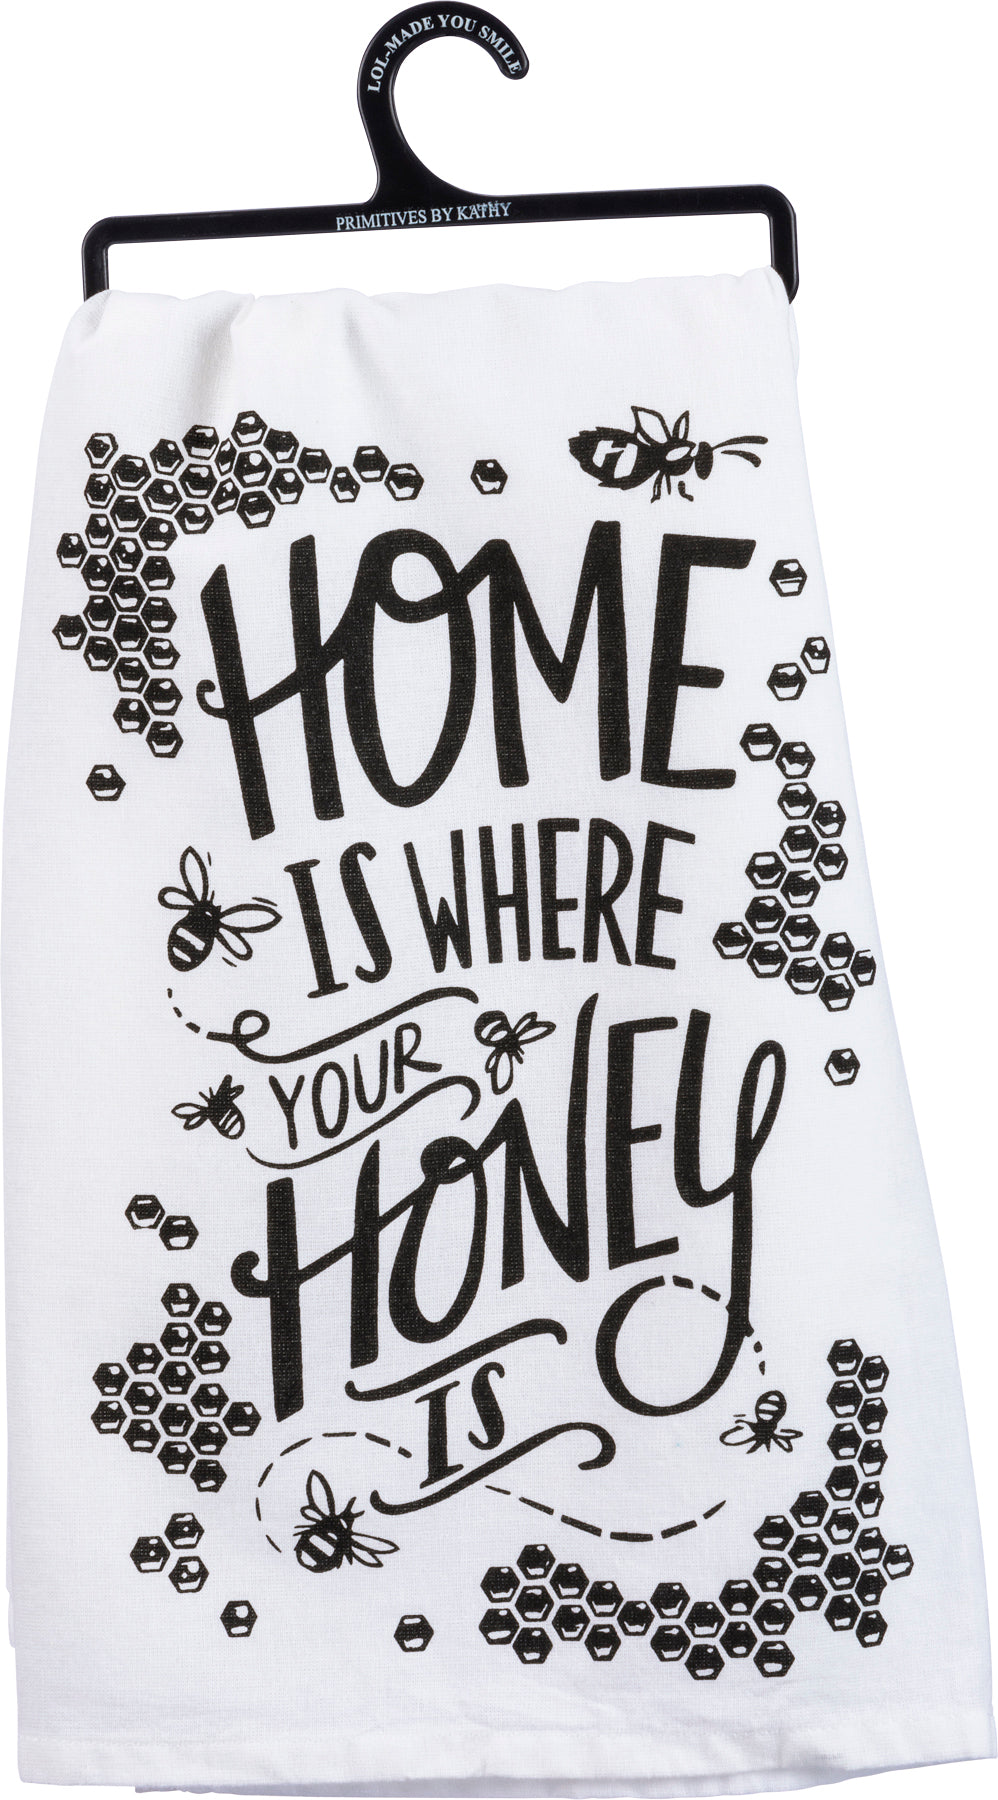 Dish Towel - Home Is Where Your Honey Is